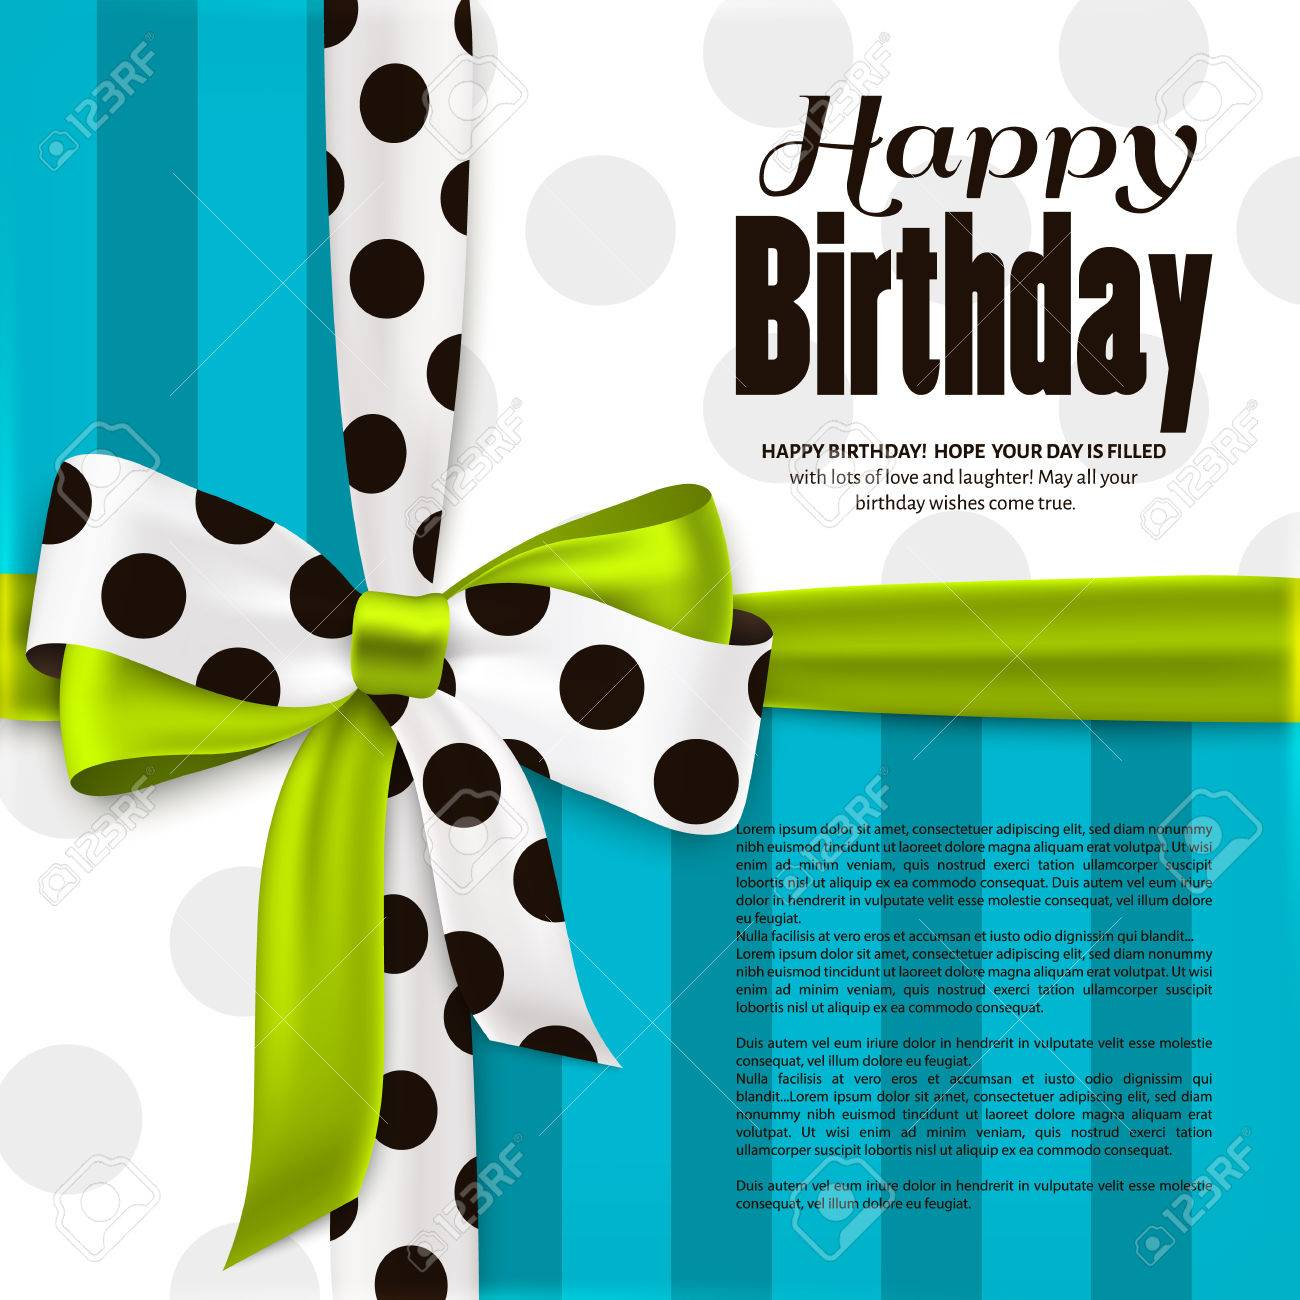 Happy birthday greeting card. Green bow and ribbon with black polka dots made from silk. Stripes and dotted paper. - 60889454